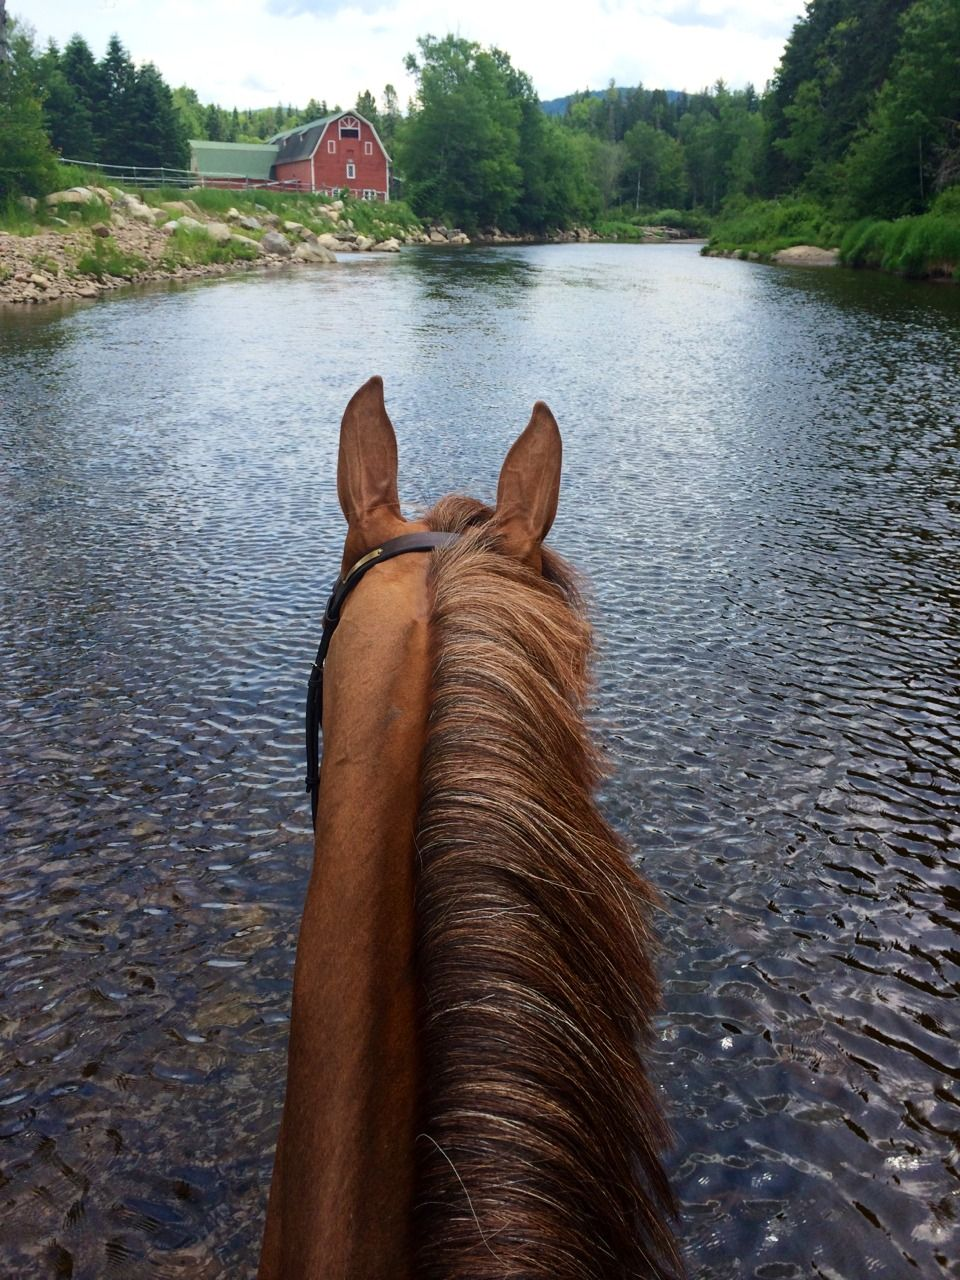 I Want To Ride In Water Someday With Images Horse Love Horses